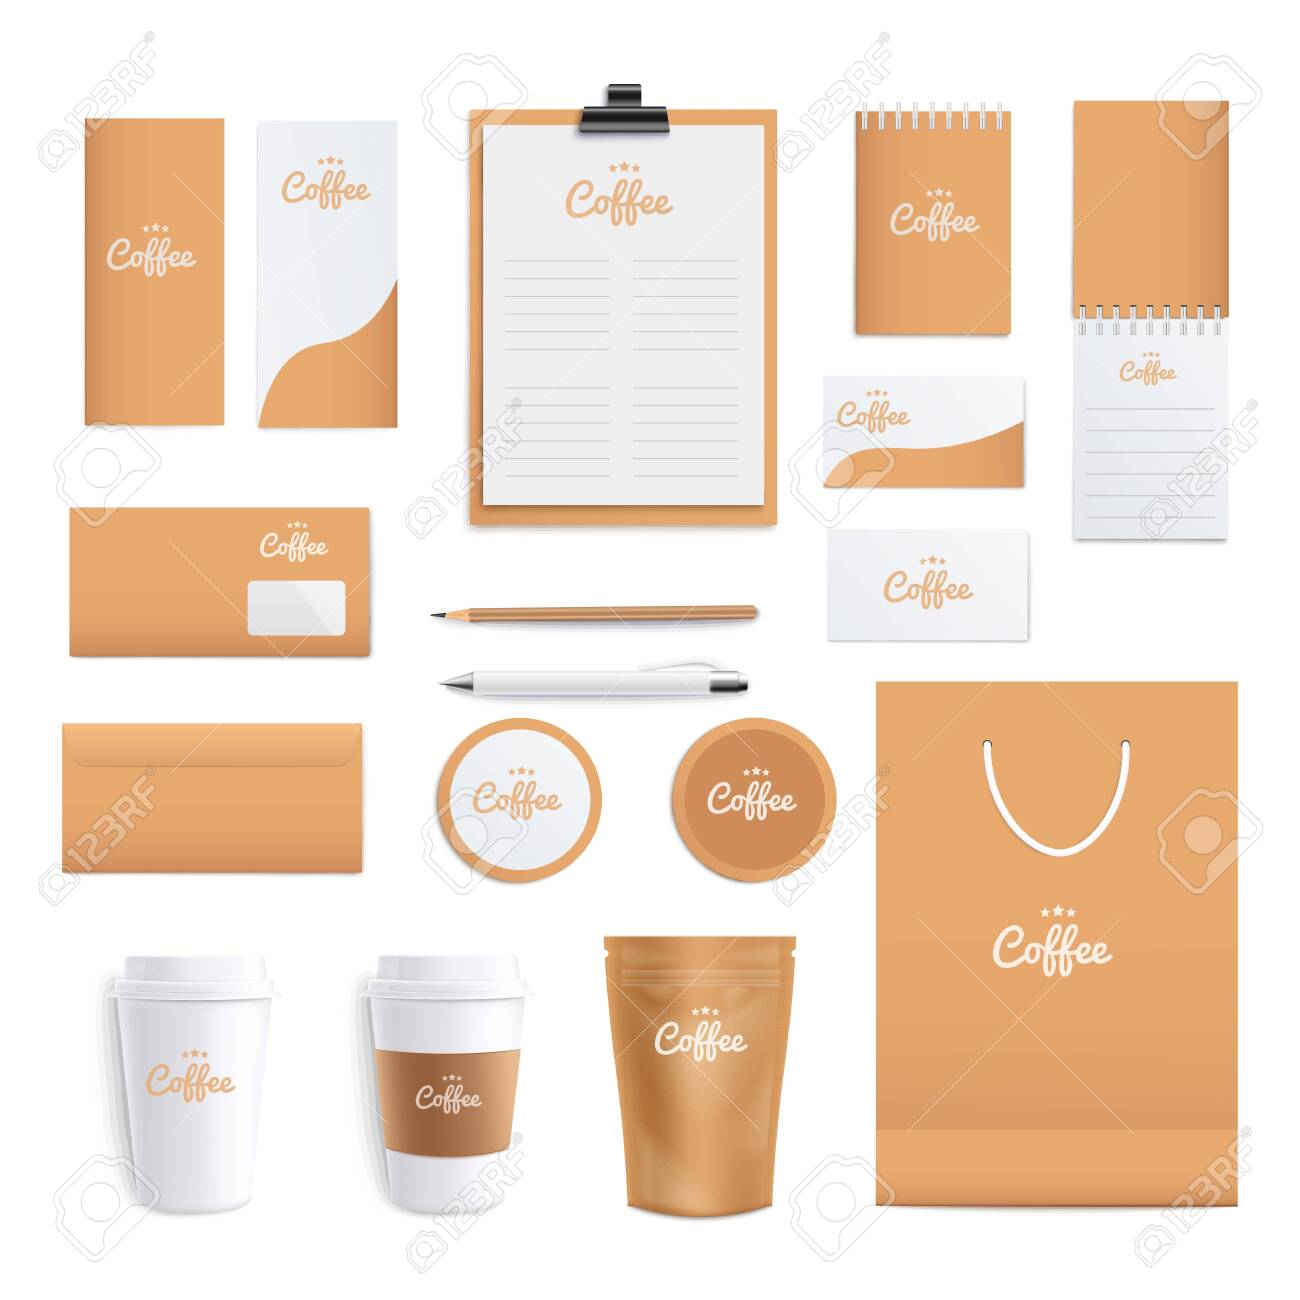 Coffee Themed Corporate Identity Stationery Layout Set Of Realistic Royalty Free Cliparts Vectors And Stock Illustration Image 152716876